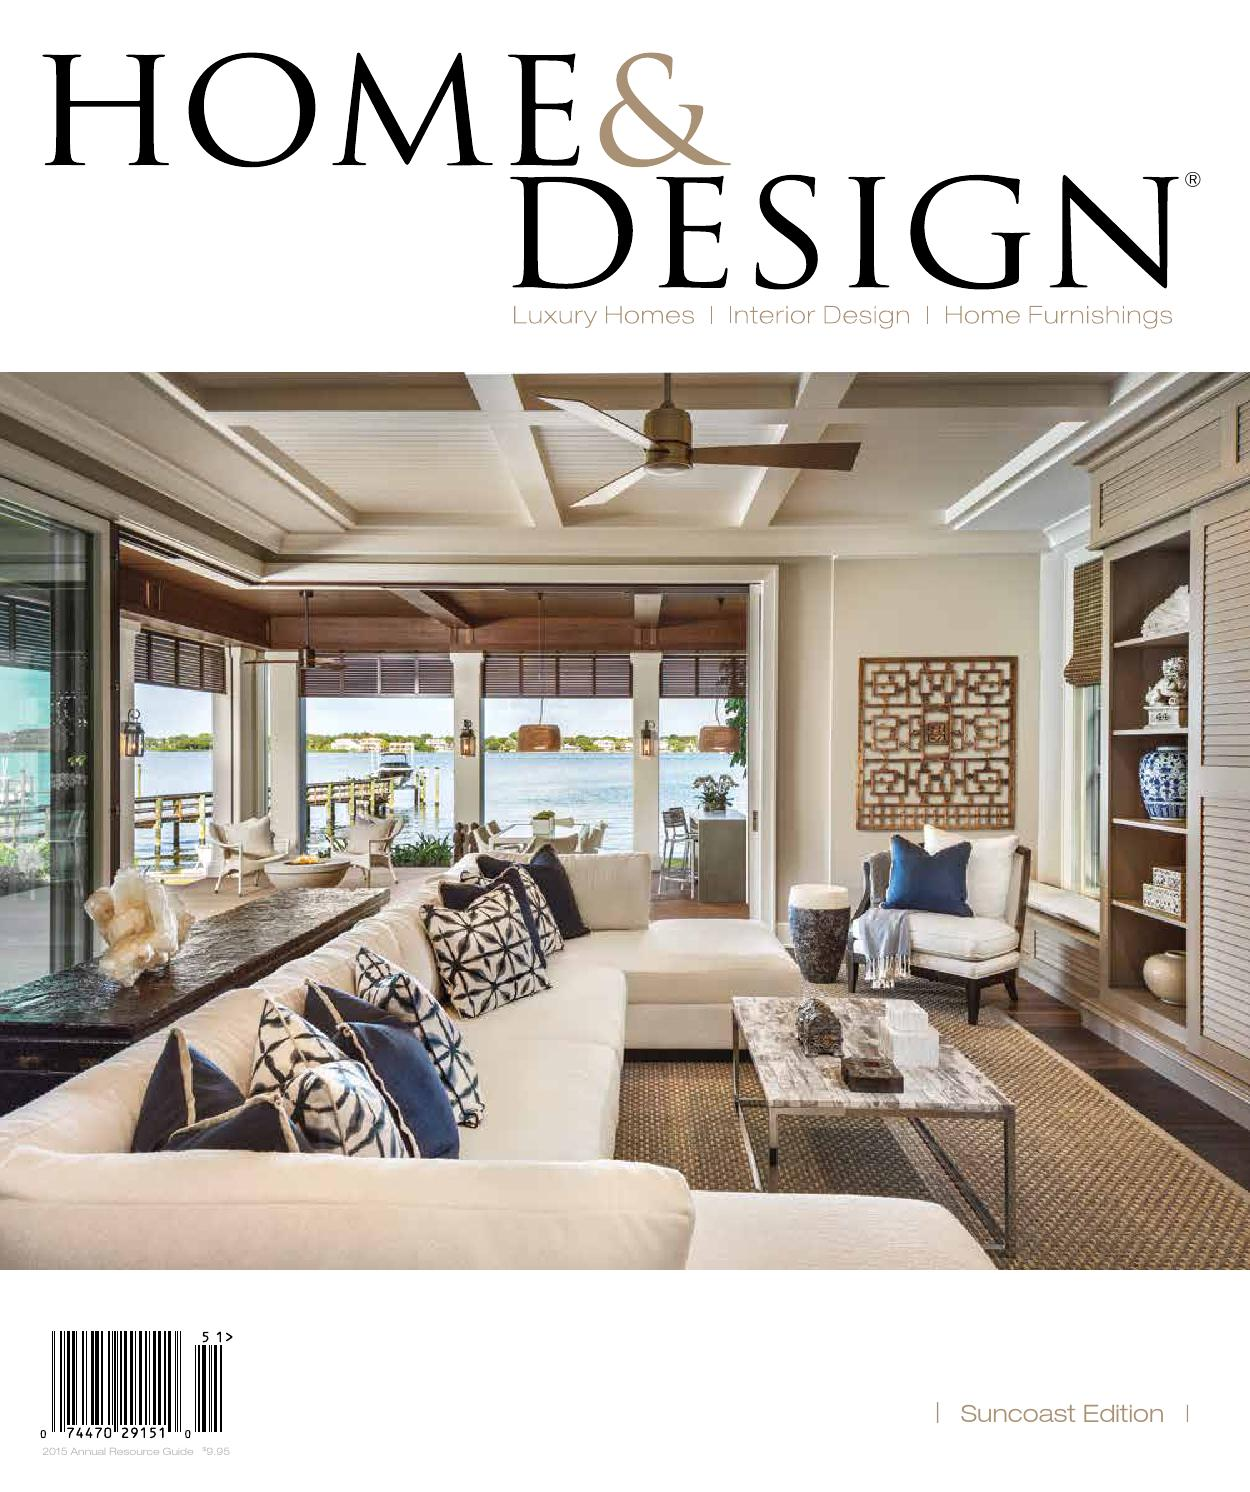 Home Design Magazine Annual Resource Guide 2015 Suncoast Florida Edition By Anthony Spano Issuu